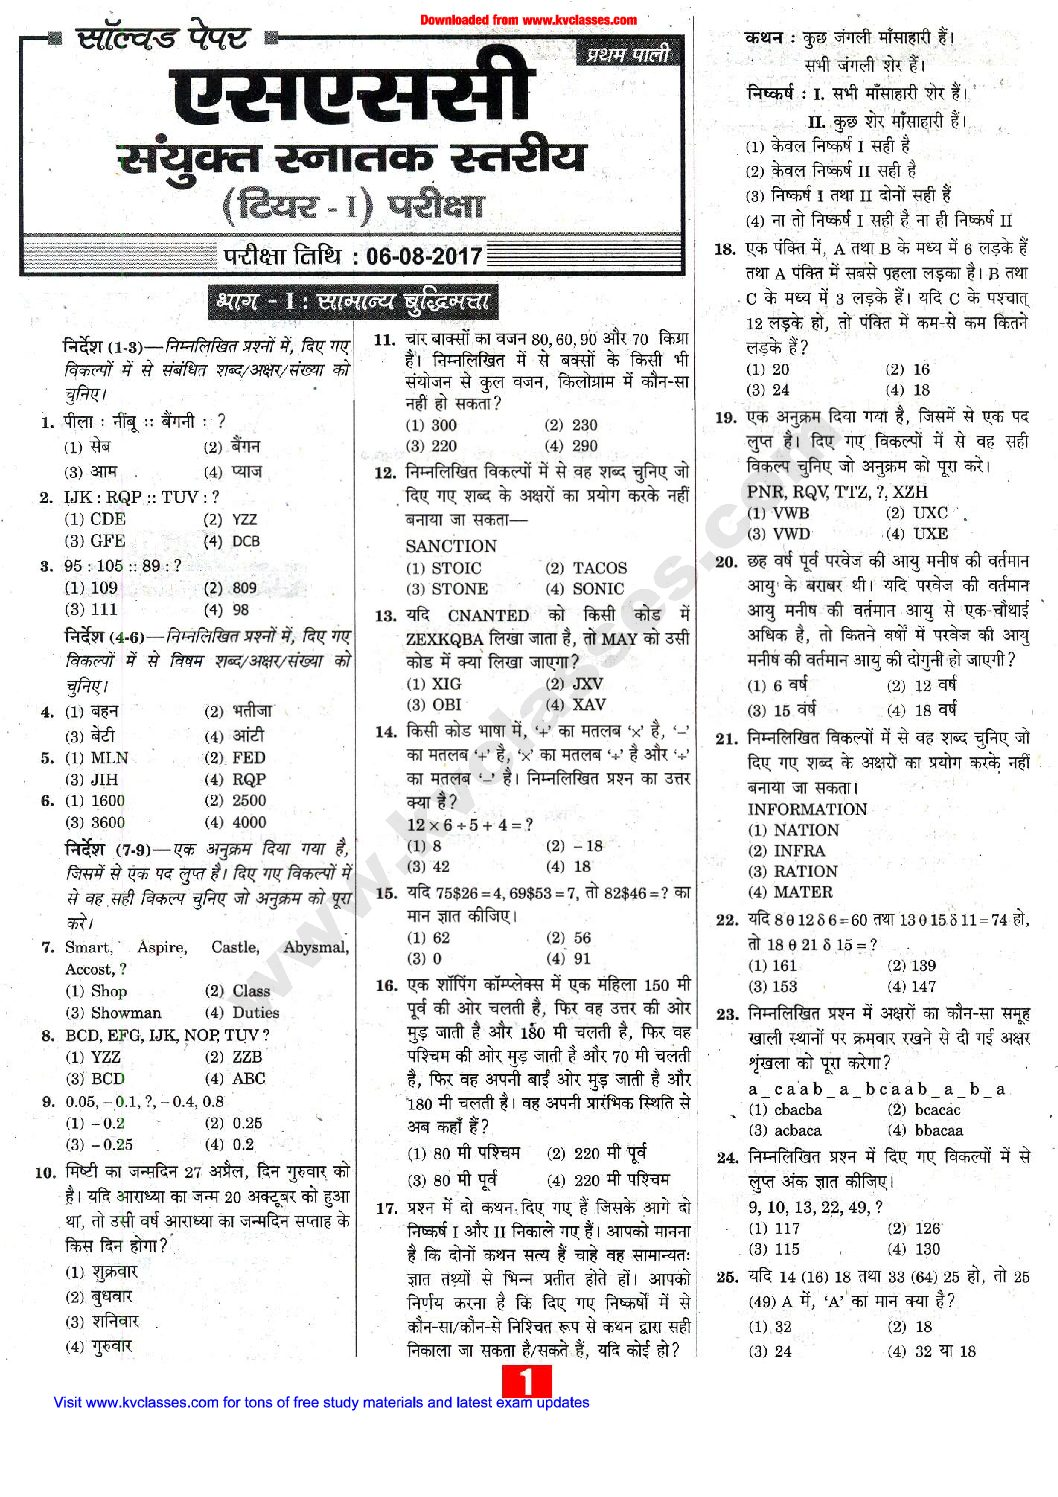 SSC QUESTION PAPER IN HINDI EBOOK DOWNLOAD